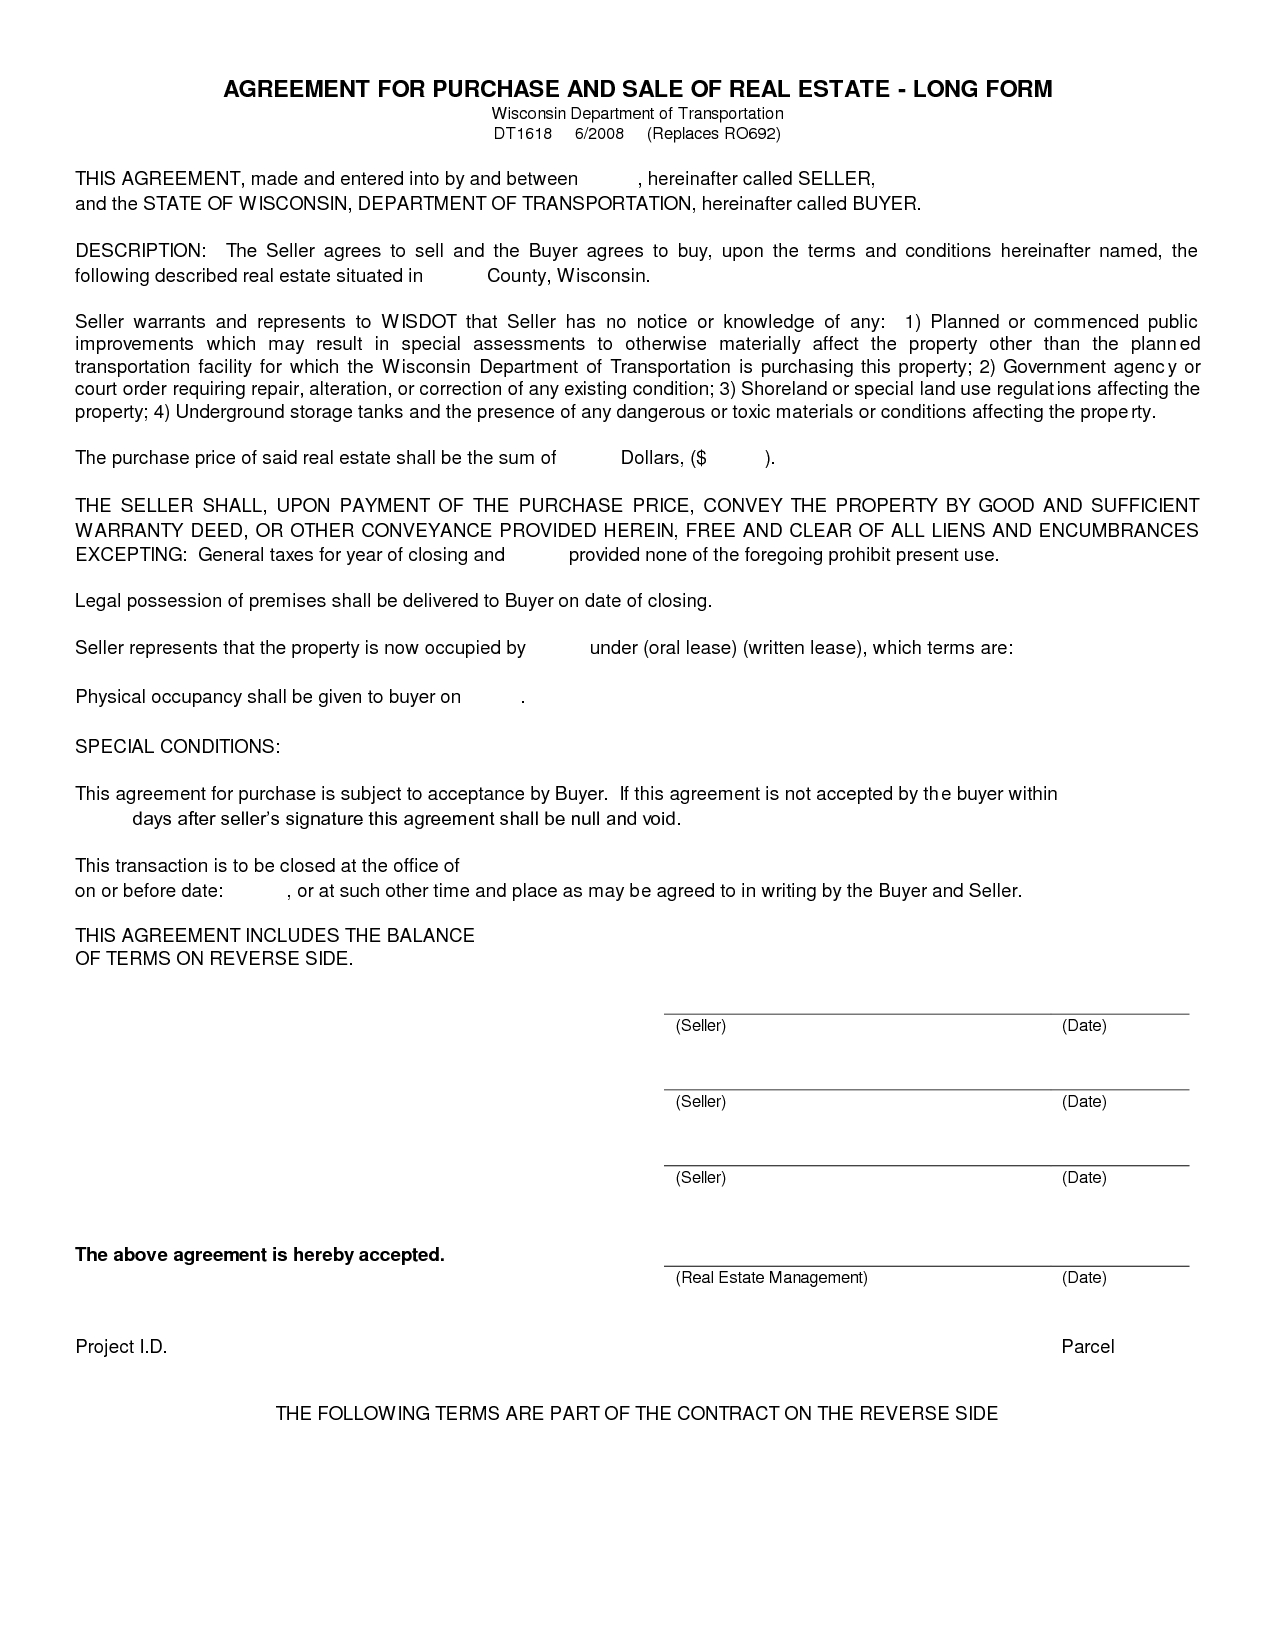 Free Blank Purchase Agreement Form Images - Agreement To Purchase - Free Printable Real Estate Forms